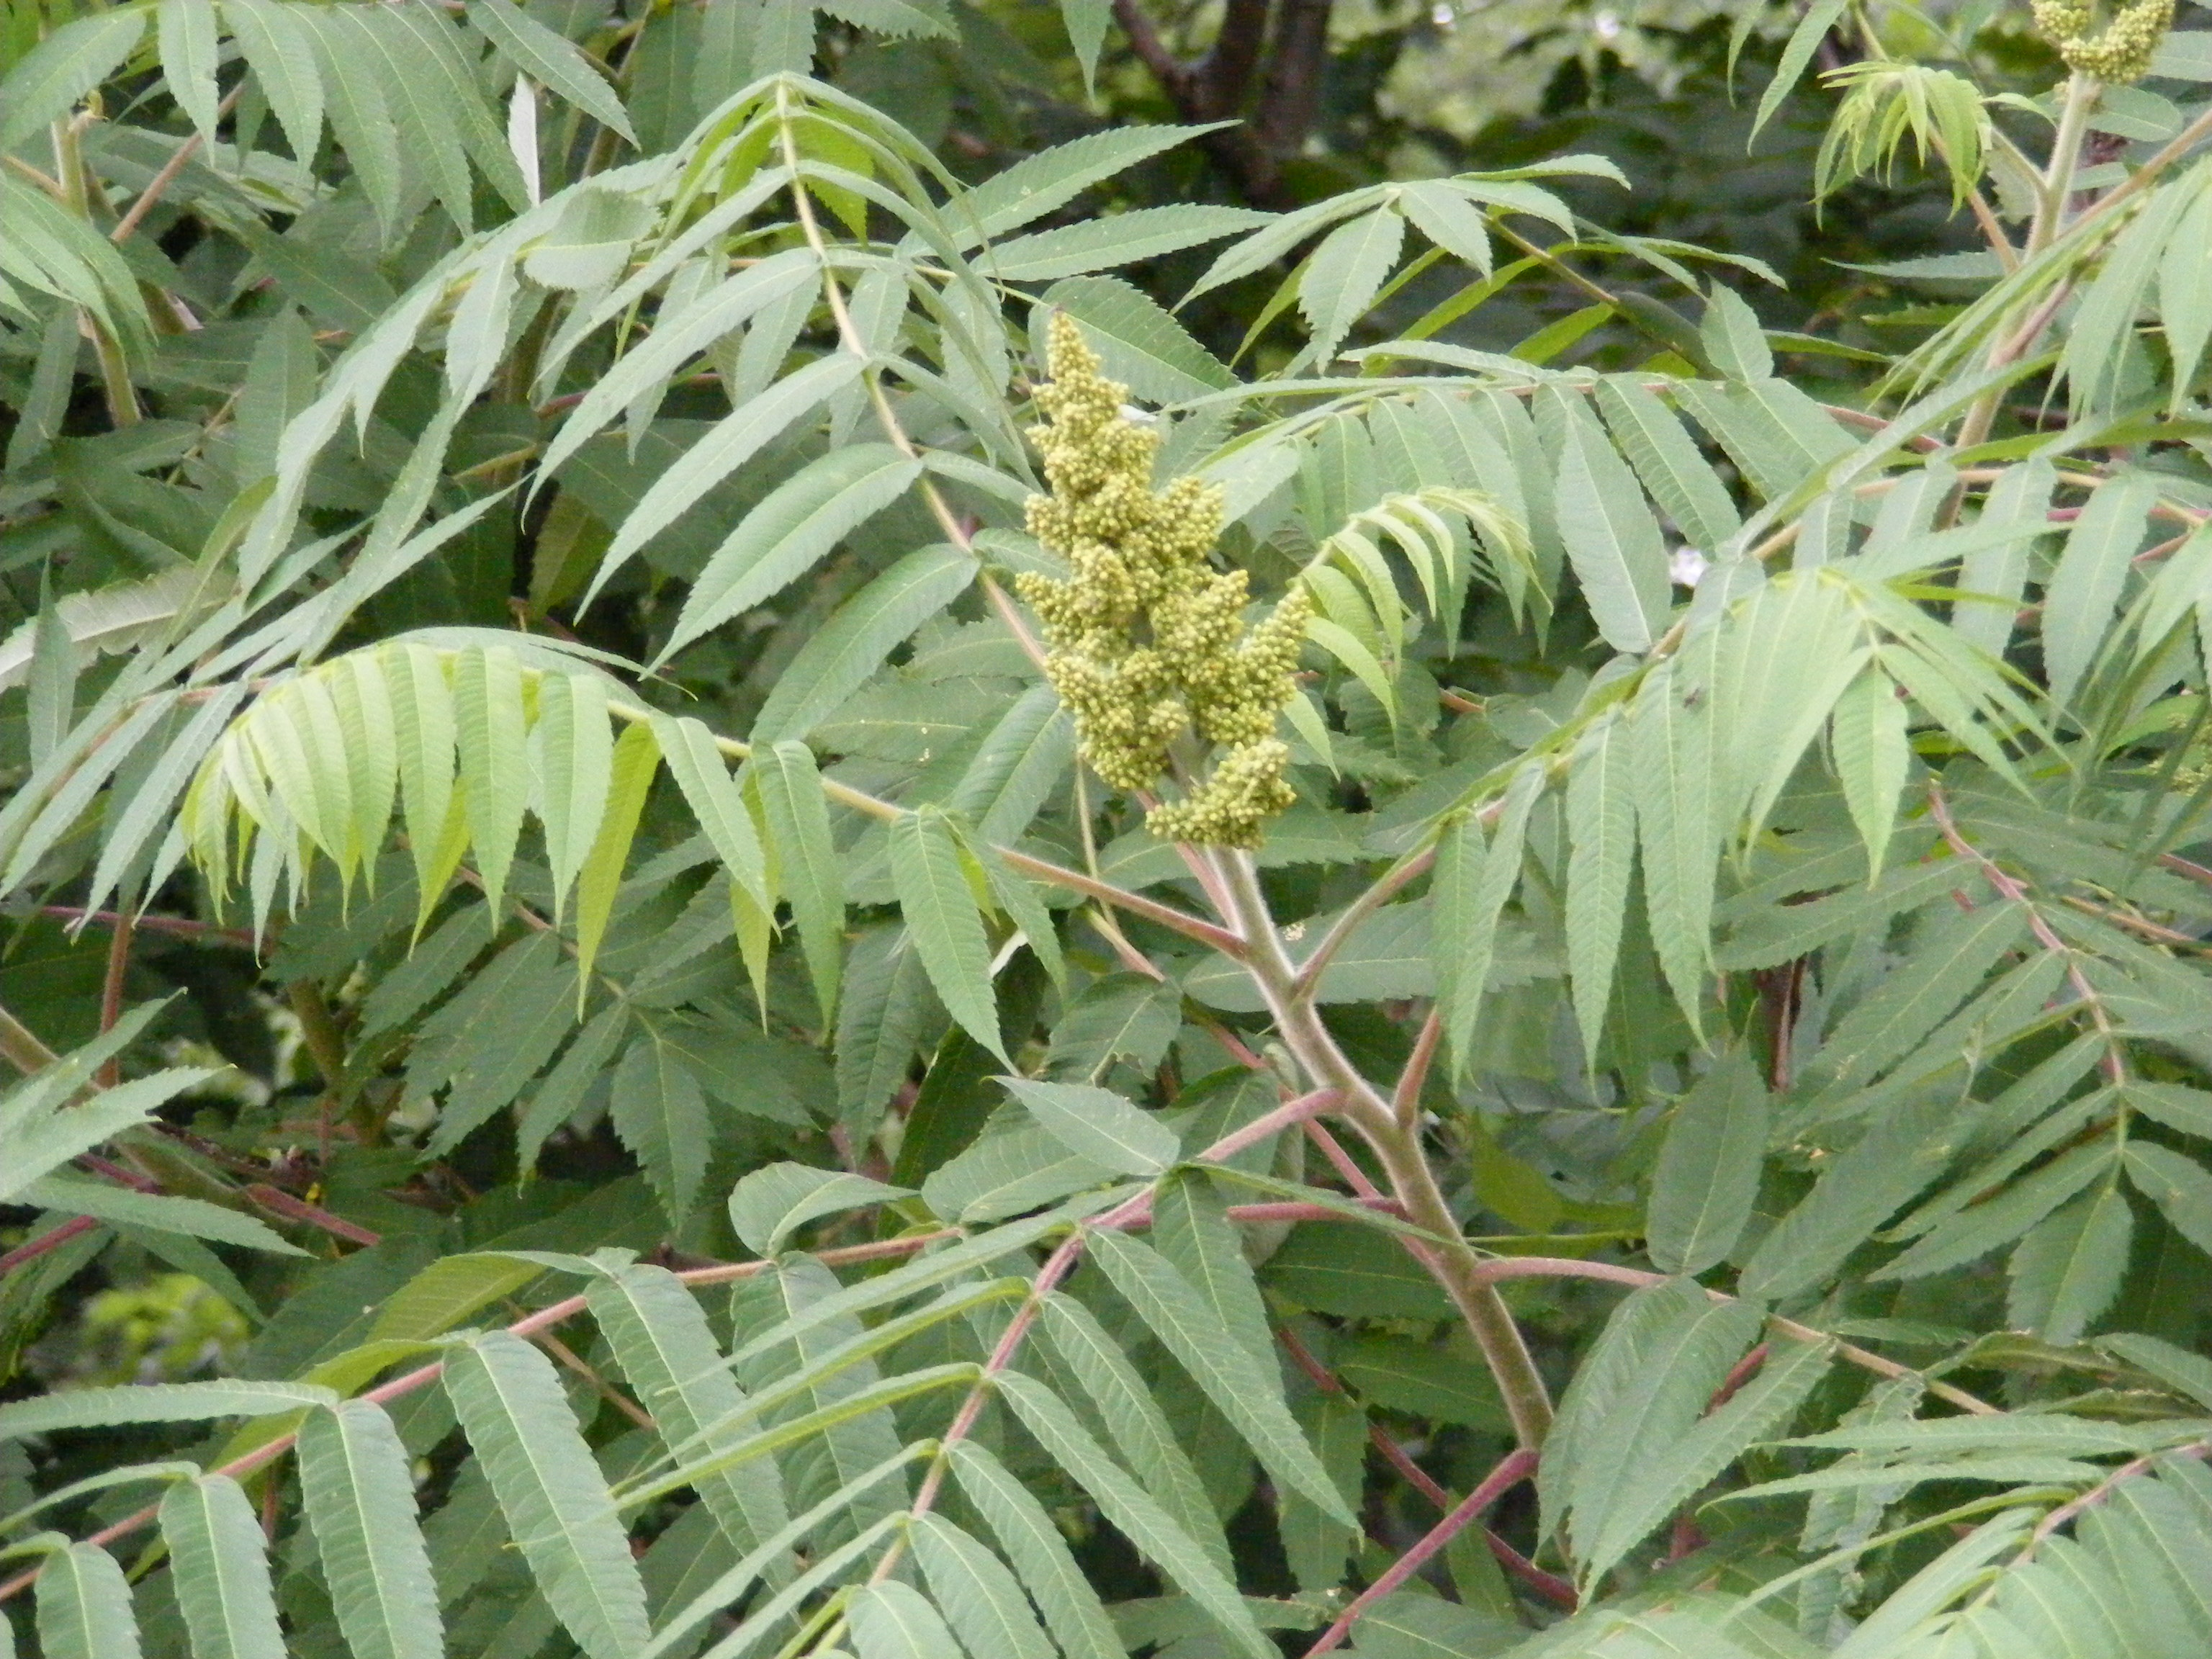 Random Plant Staghorn Sumac The Life Of Your Time